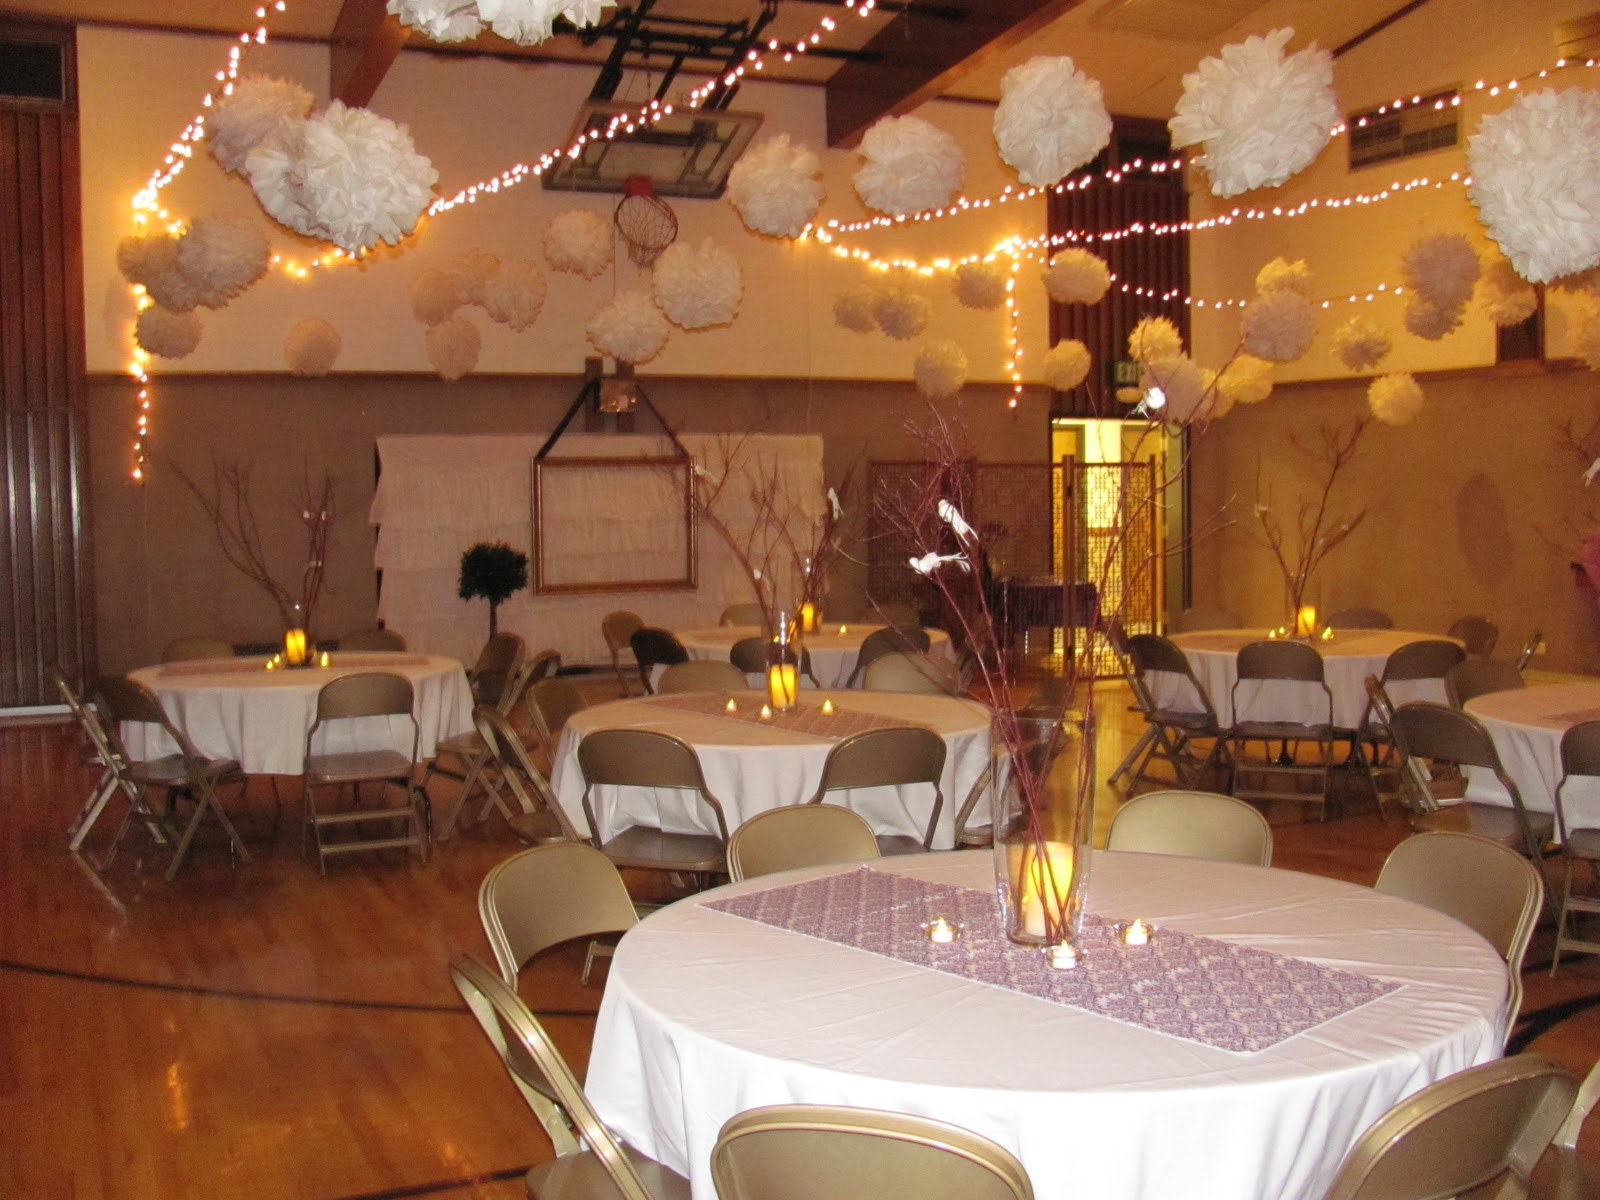 Header: Wedding Open House Decorating